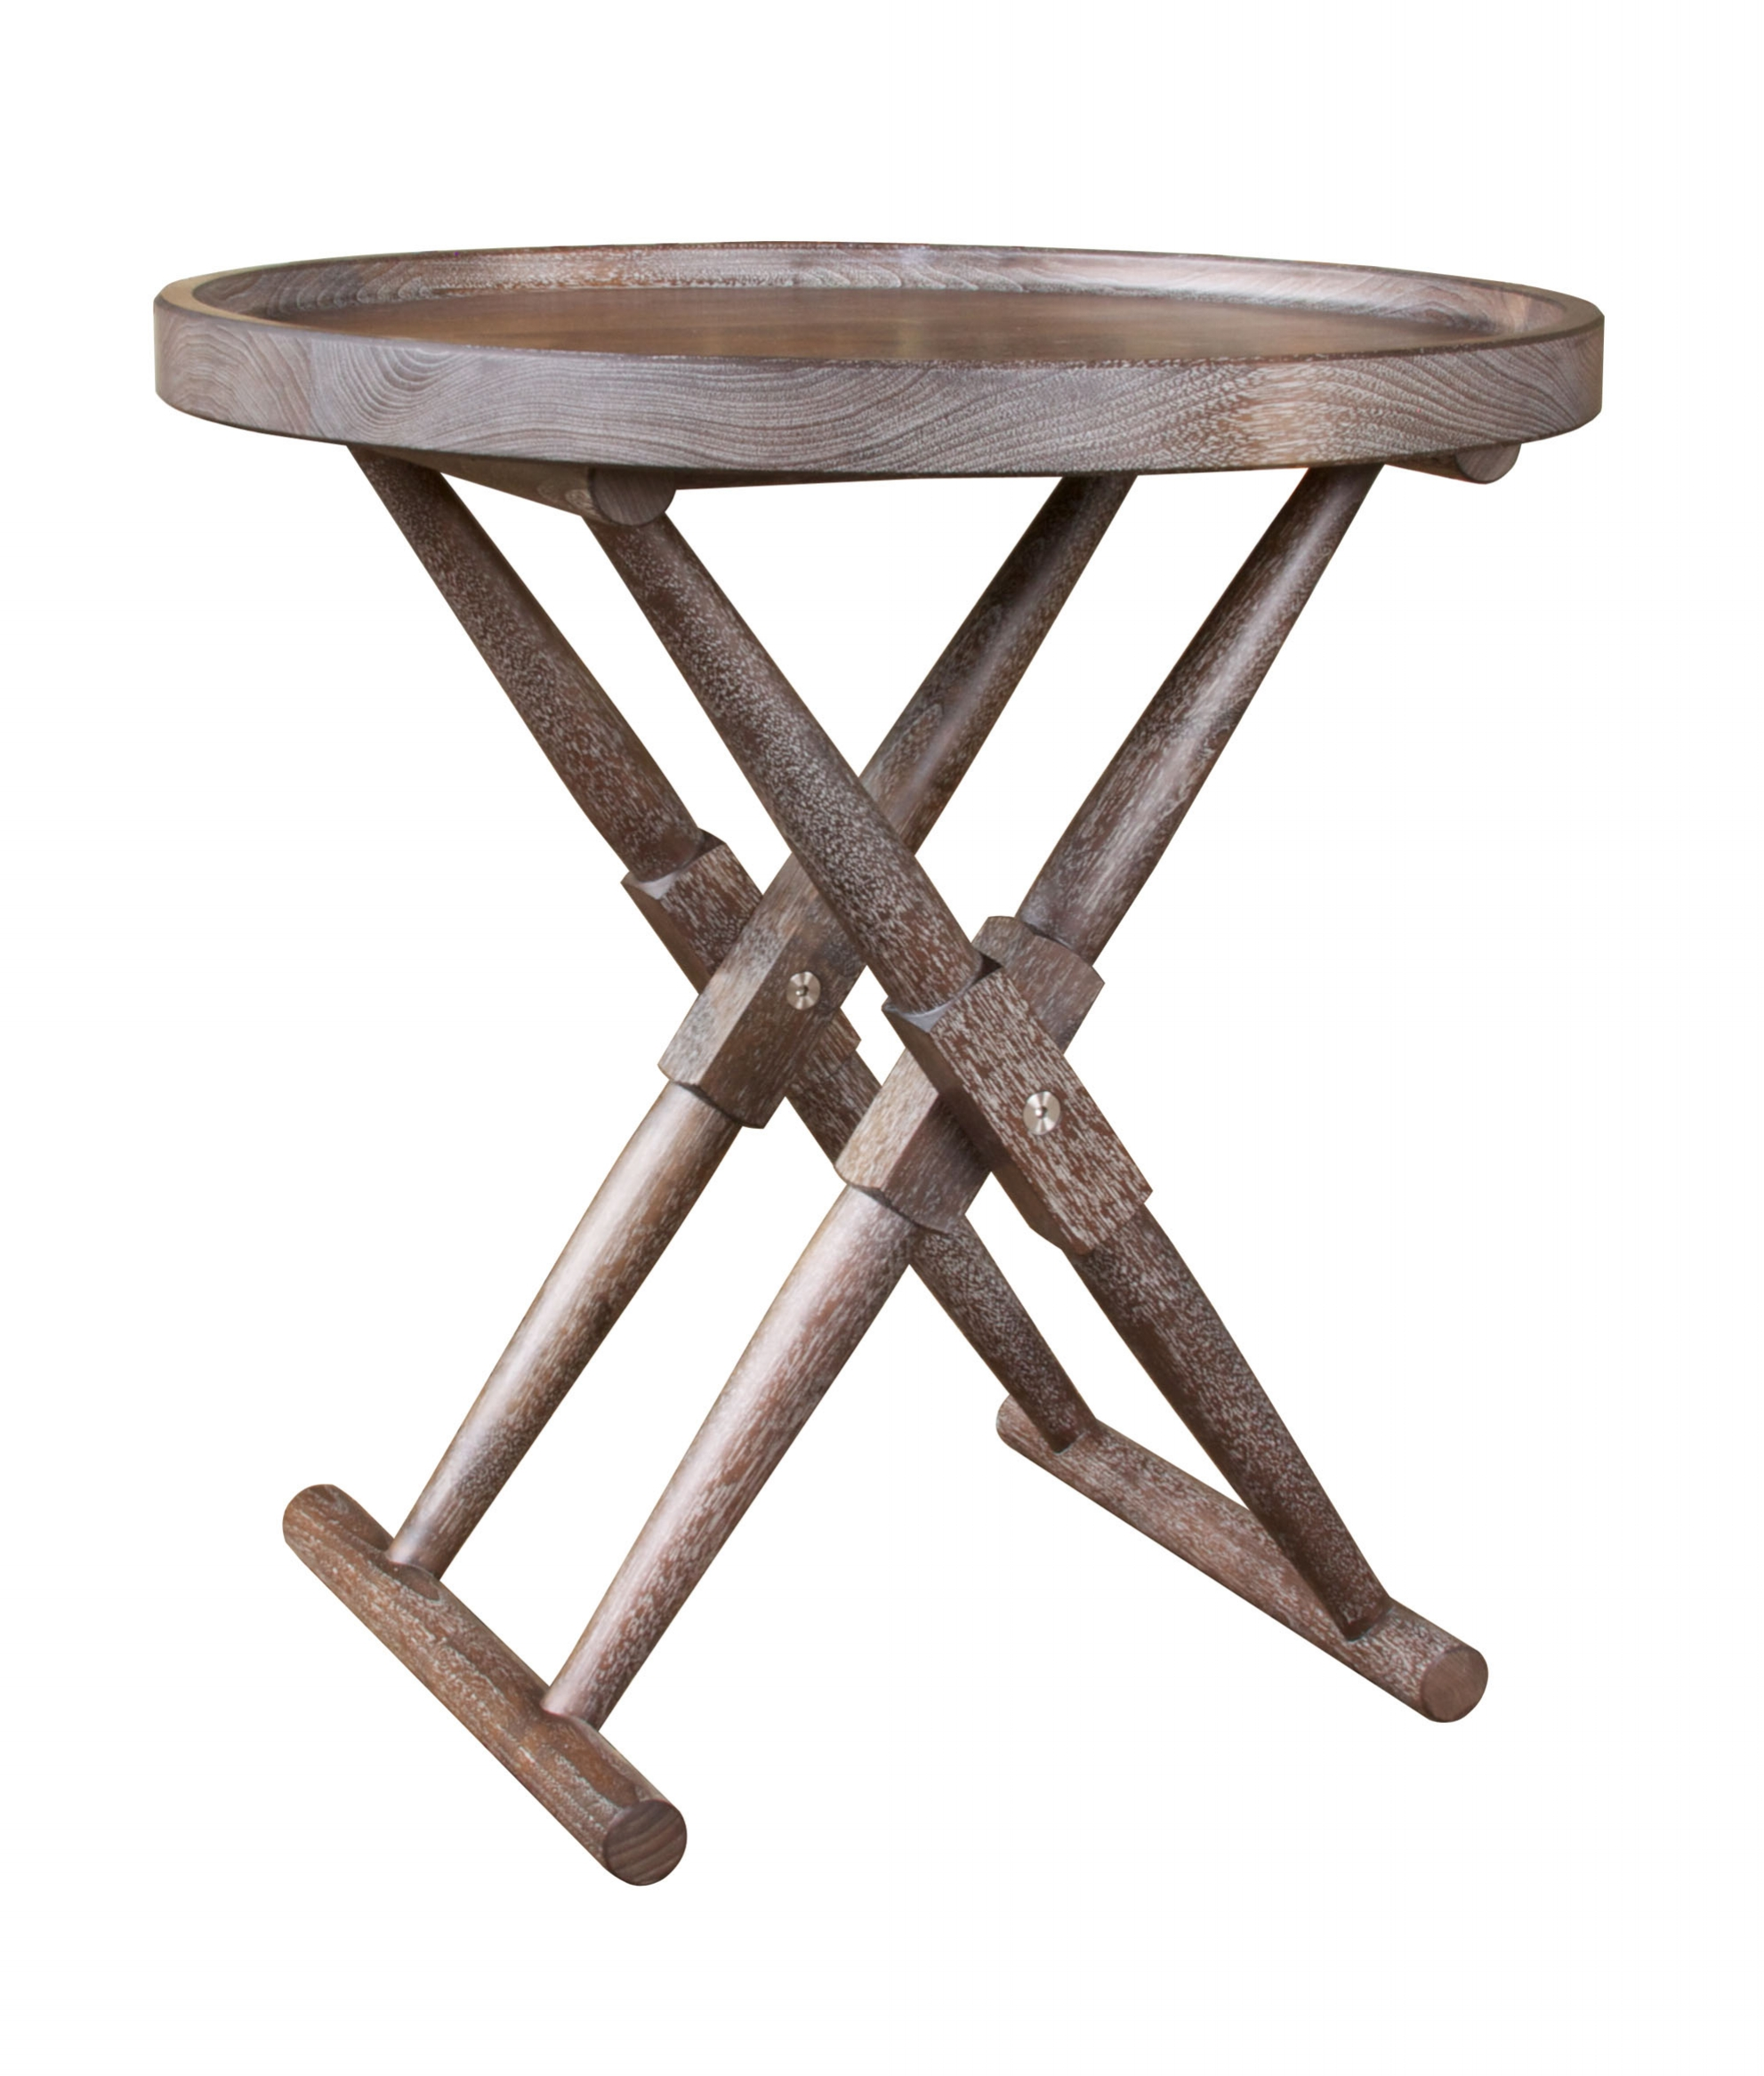 Matthiessen Round Tray Table